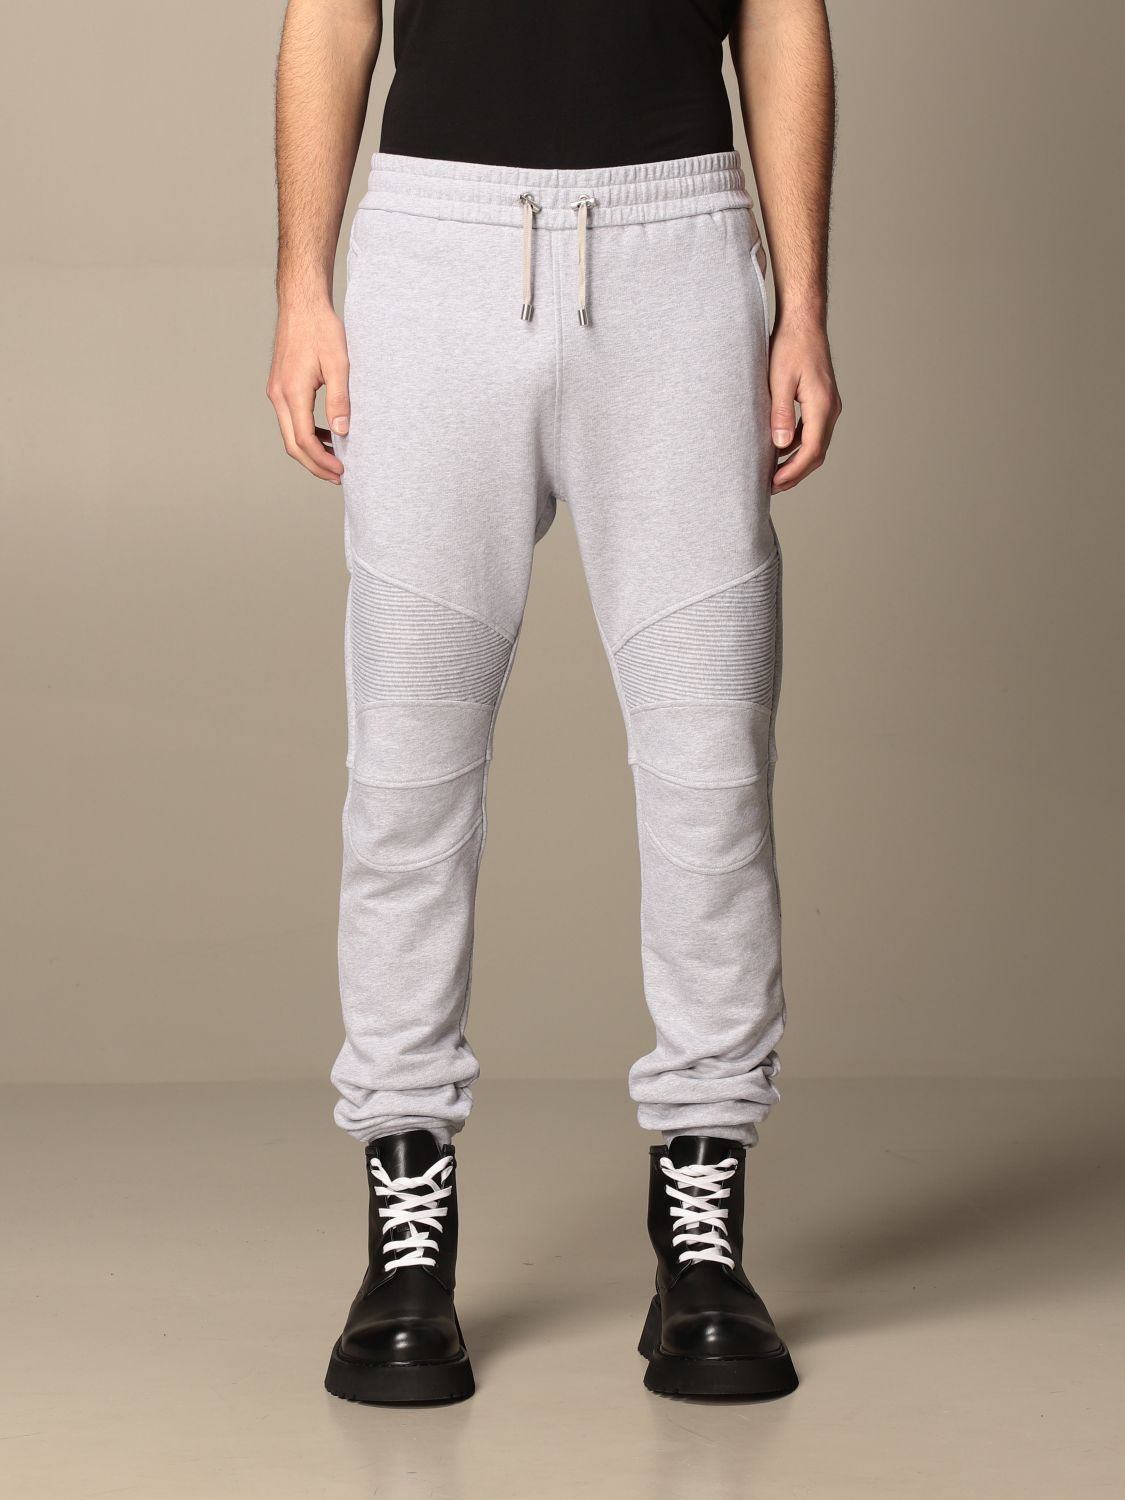 Trousers Balmain: Balmain cotton jogging trousers with logo grey 1